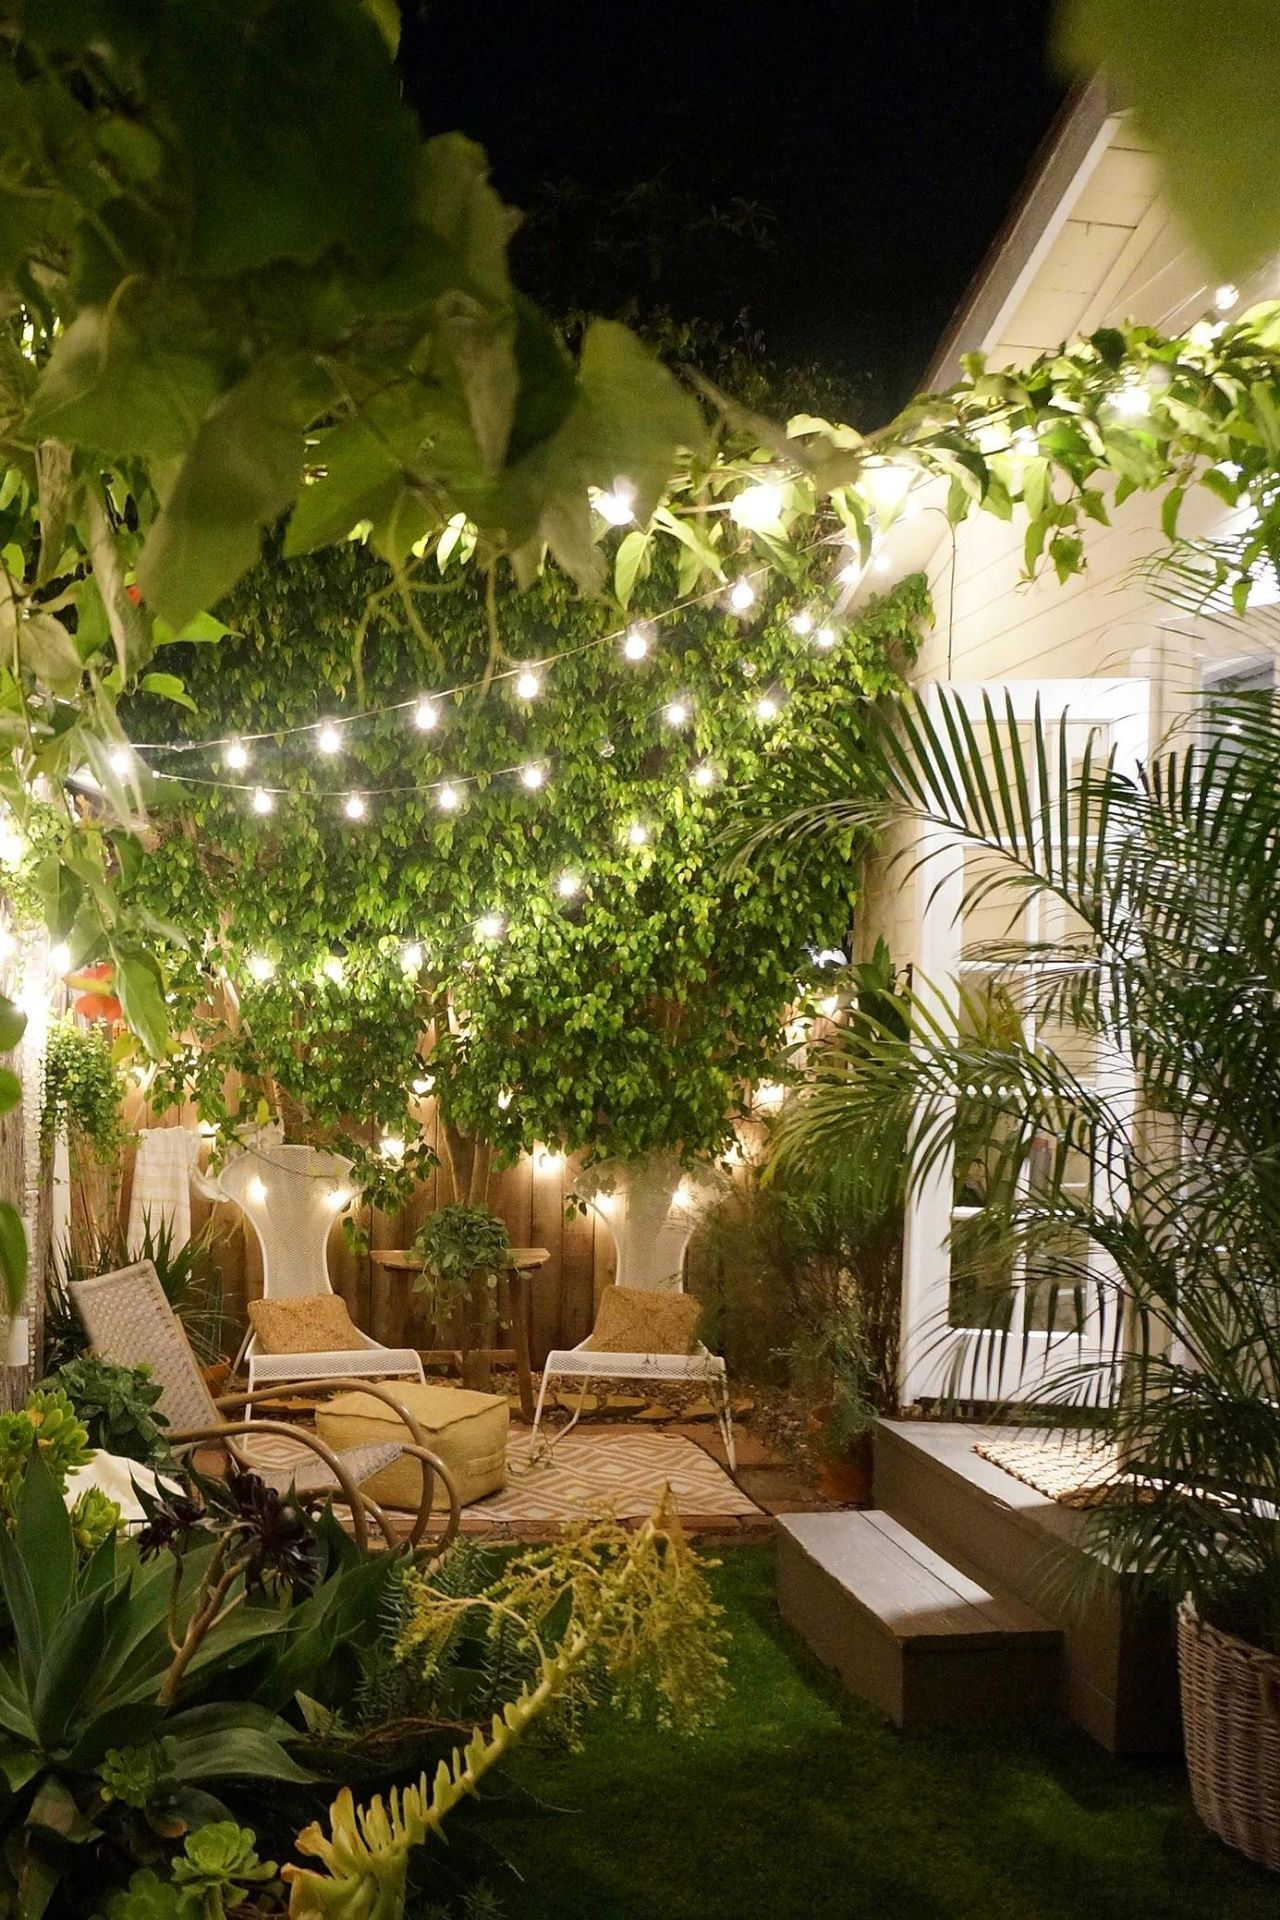 60 Incredible Tiny Houses You Ll Hardly Believe Are Real Small Garden Design Small Outdoor Spaces Backyard Tiny house backyard designs